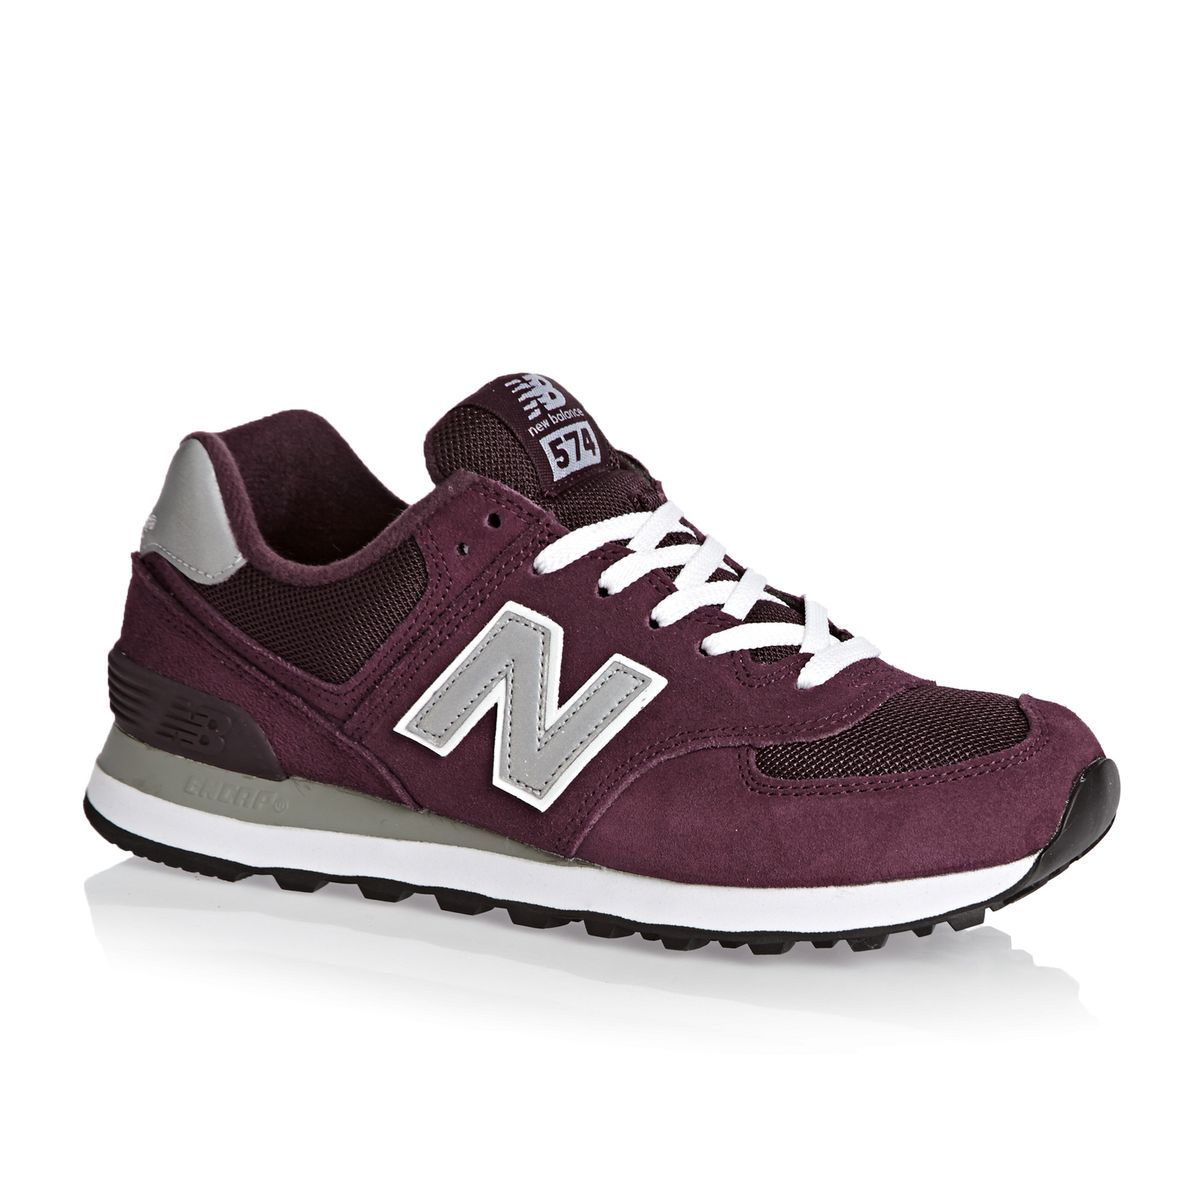 new balance 574 bordeaux portugal